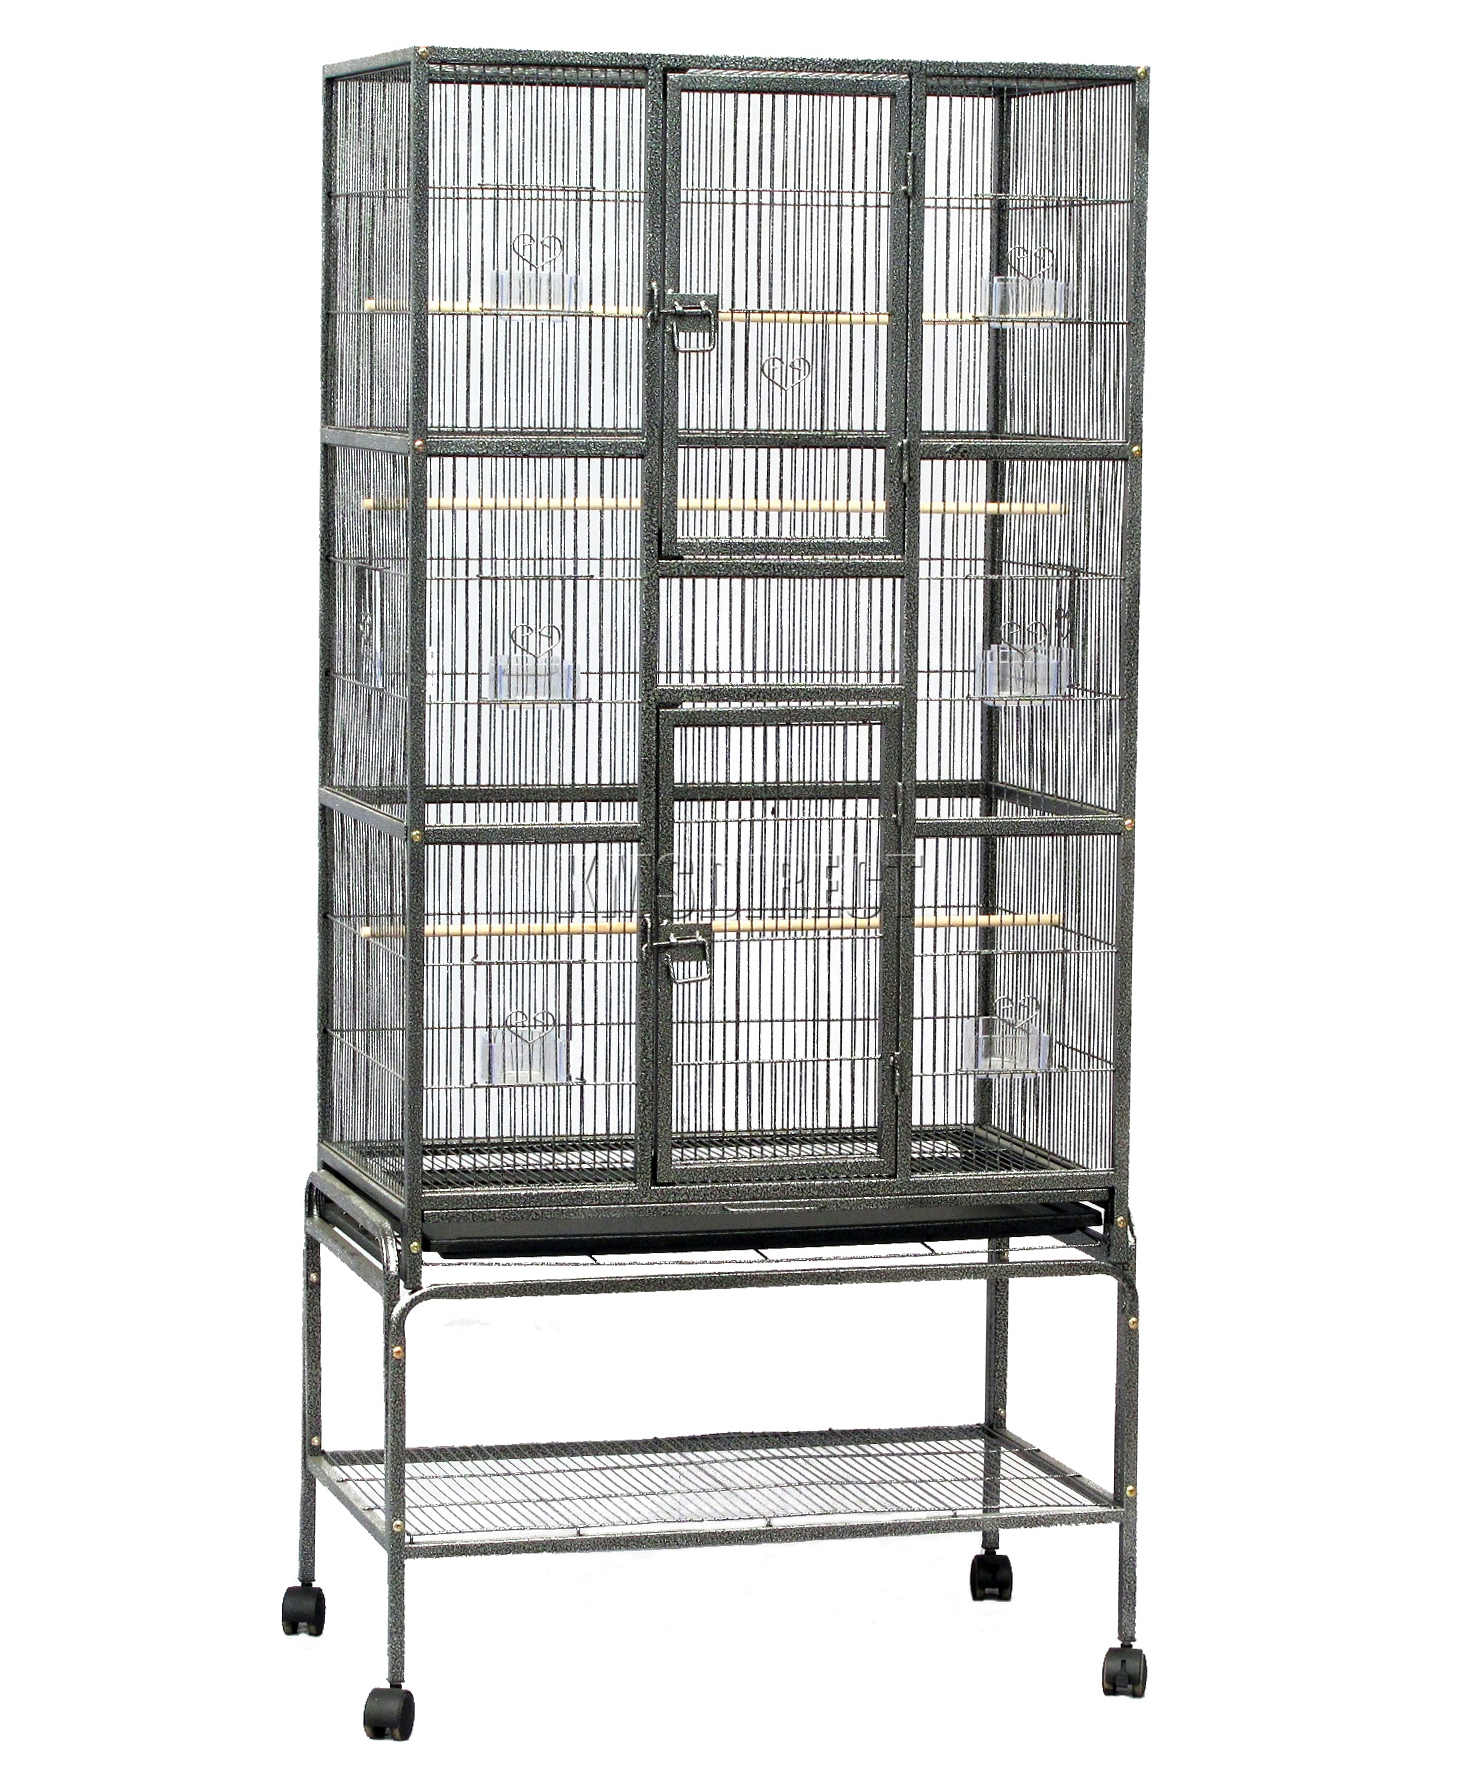 foxhunter large metal bird cage with stand aviary parrot budgie canary cockatiel ebay. Black Bedroom Furniture Sets. Home Design Ideas